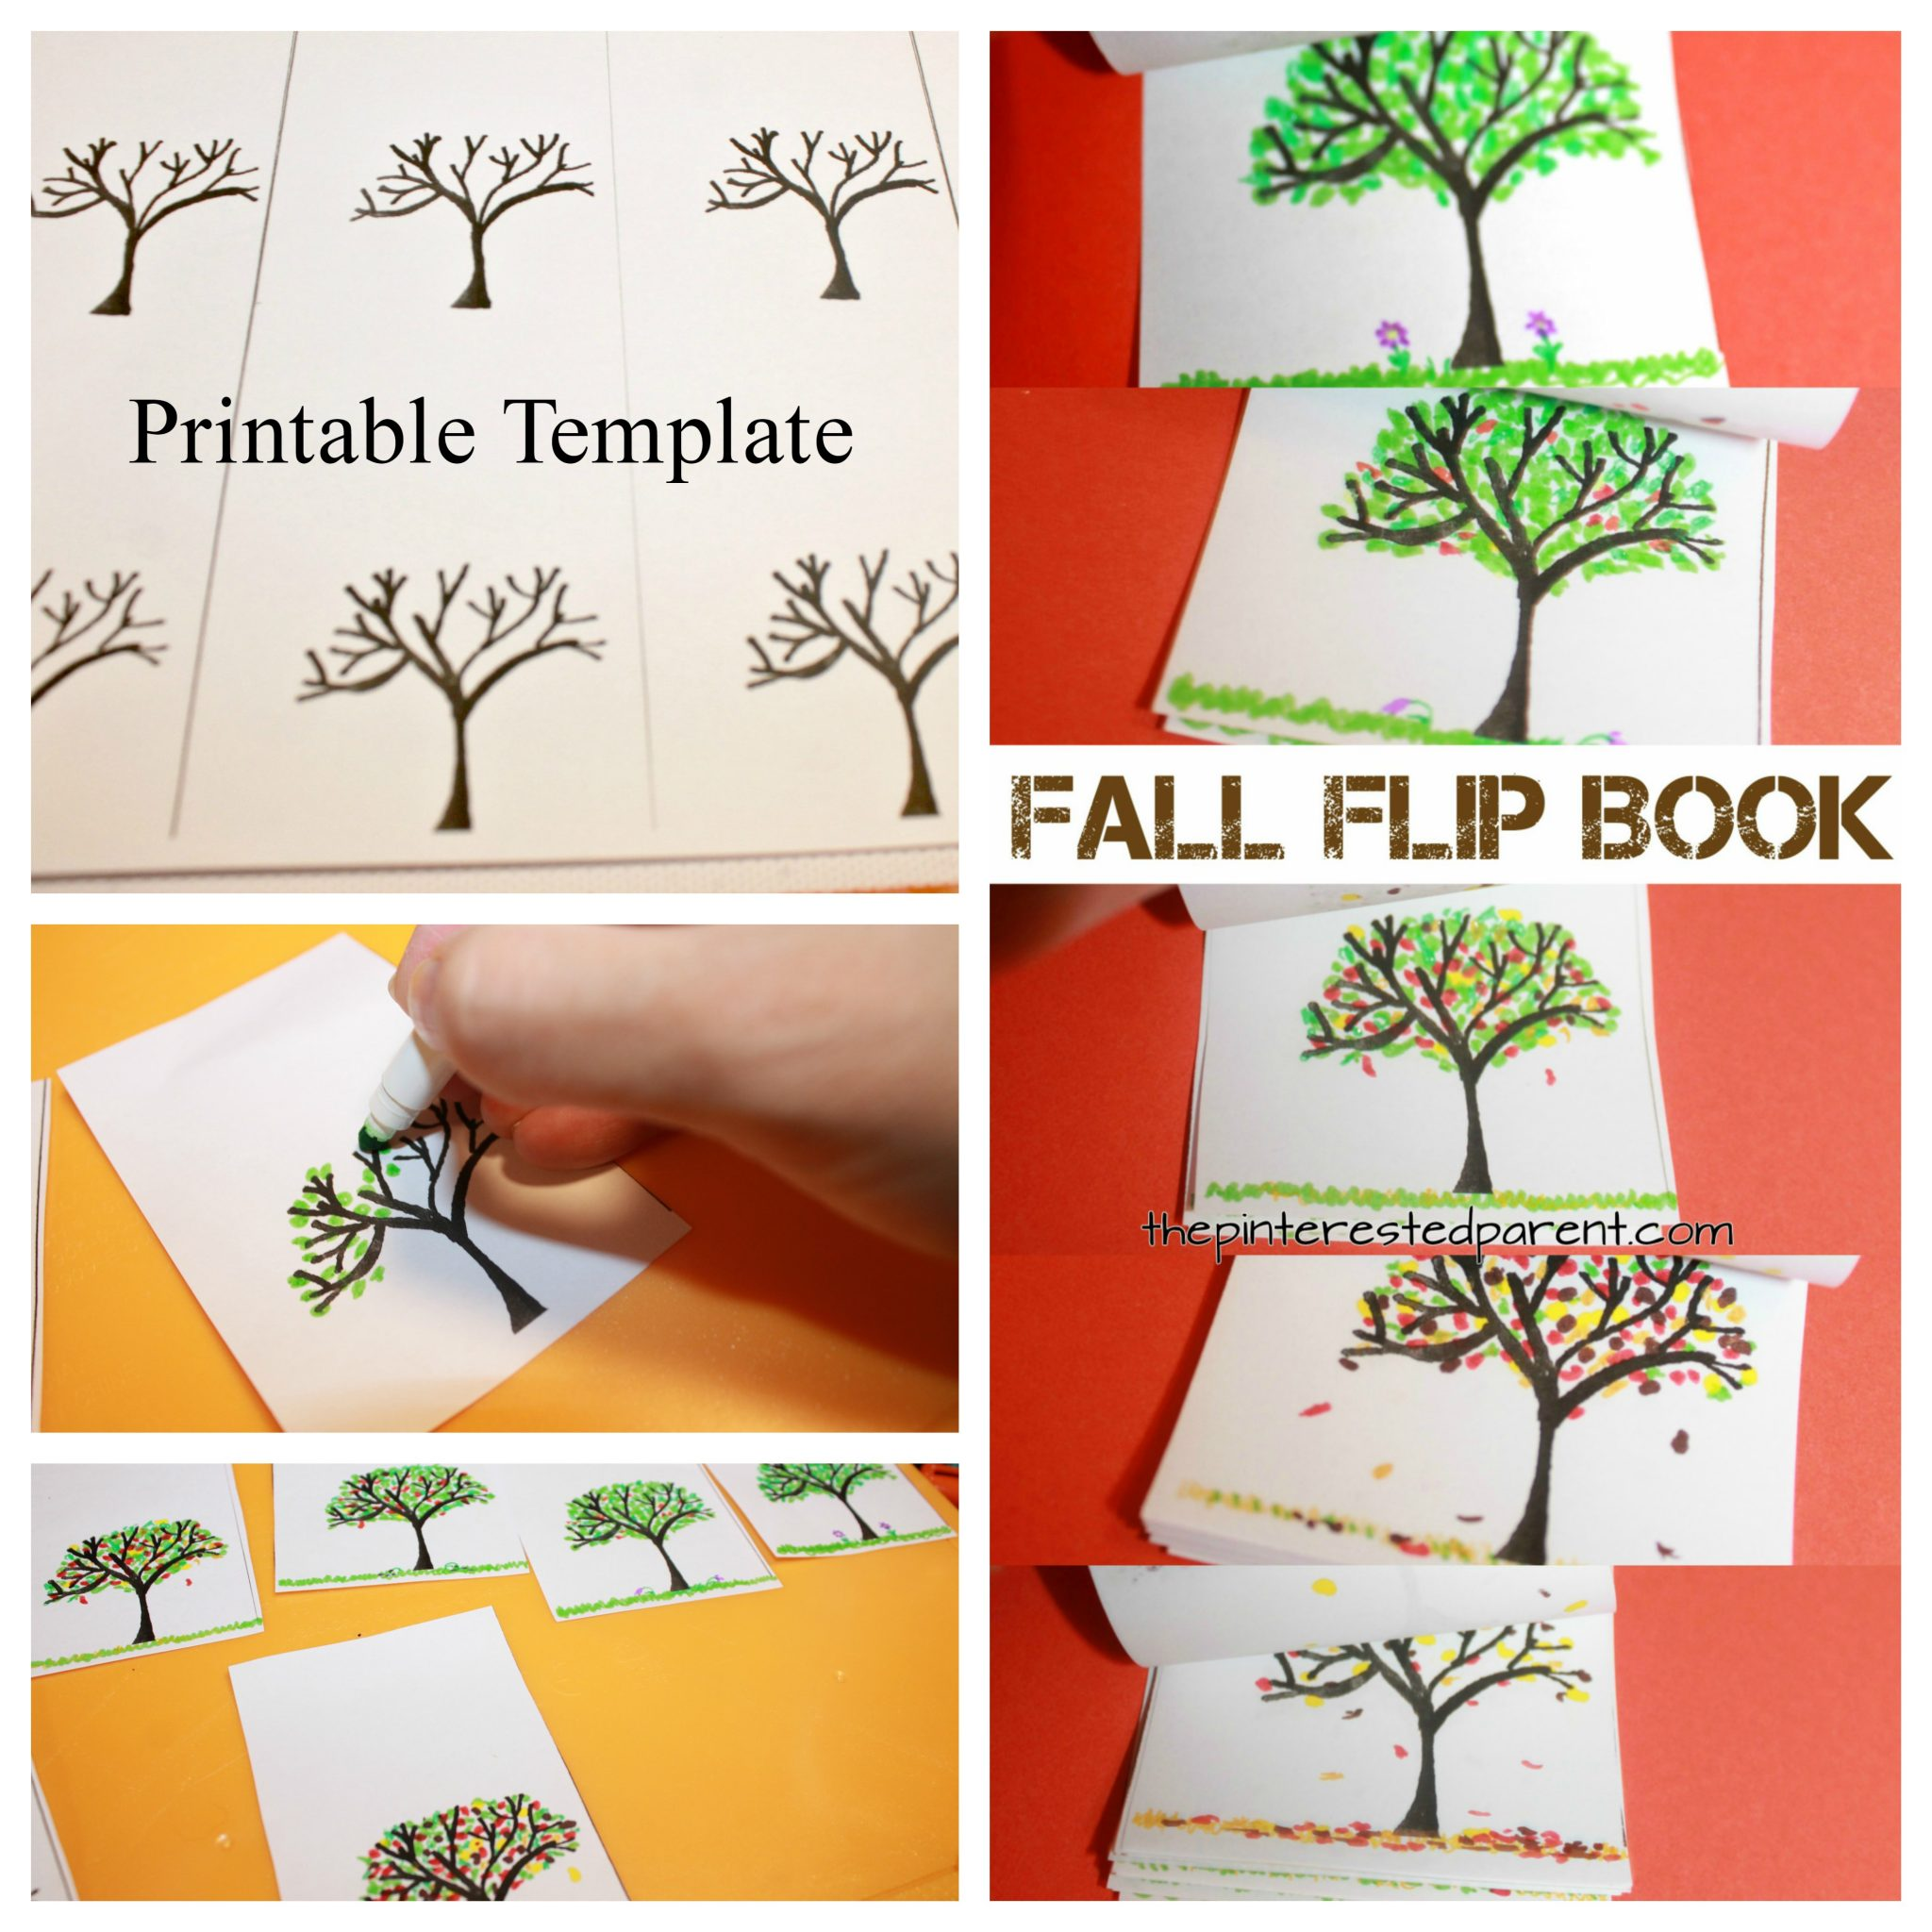 It's just a graphic of Printable Flip Book with flower